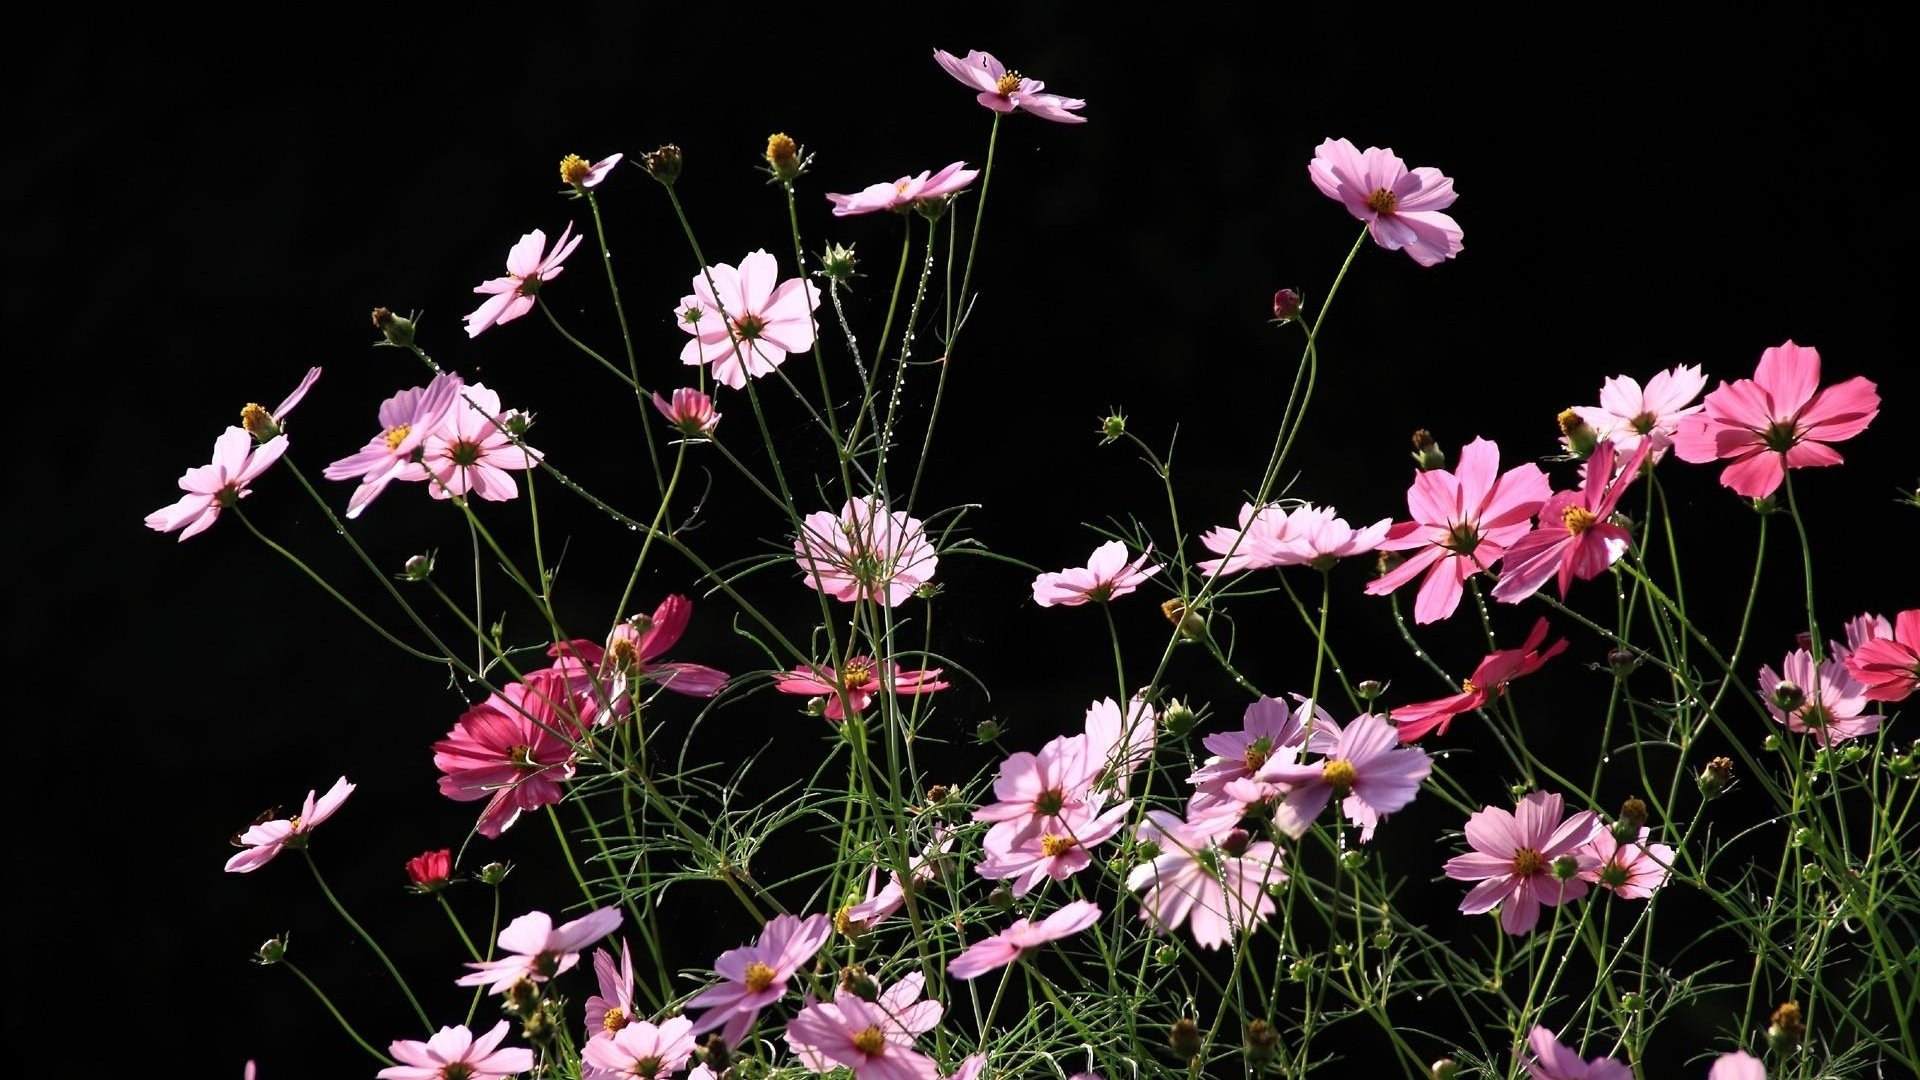 pink cosmos hd wallpaper background image 1920x1080 id 783858